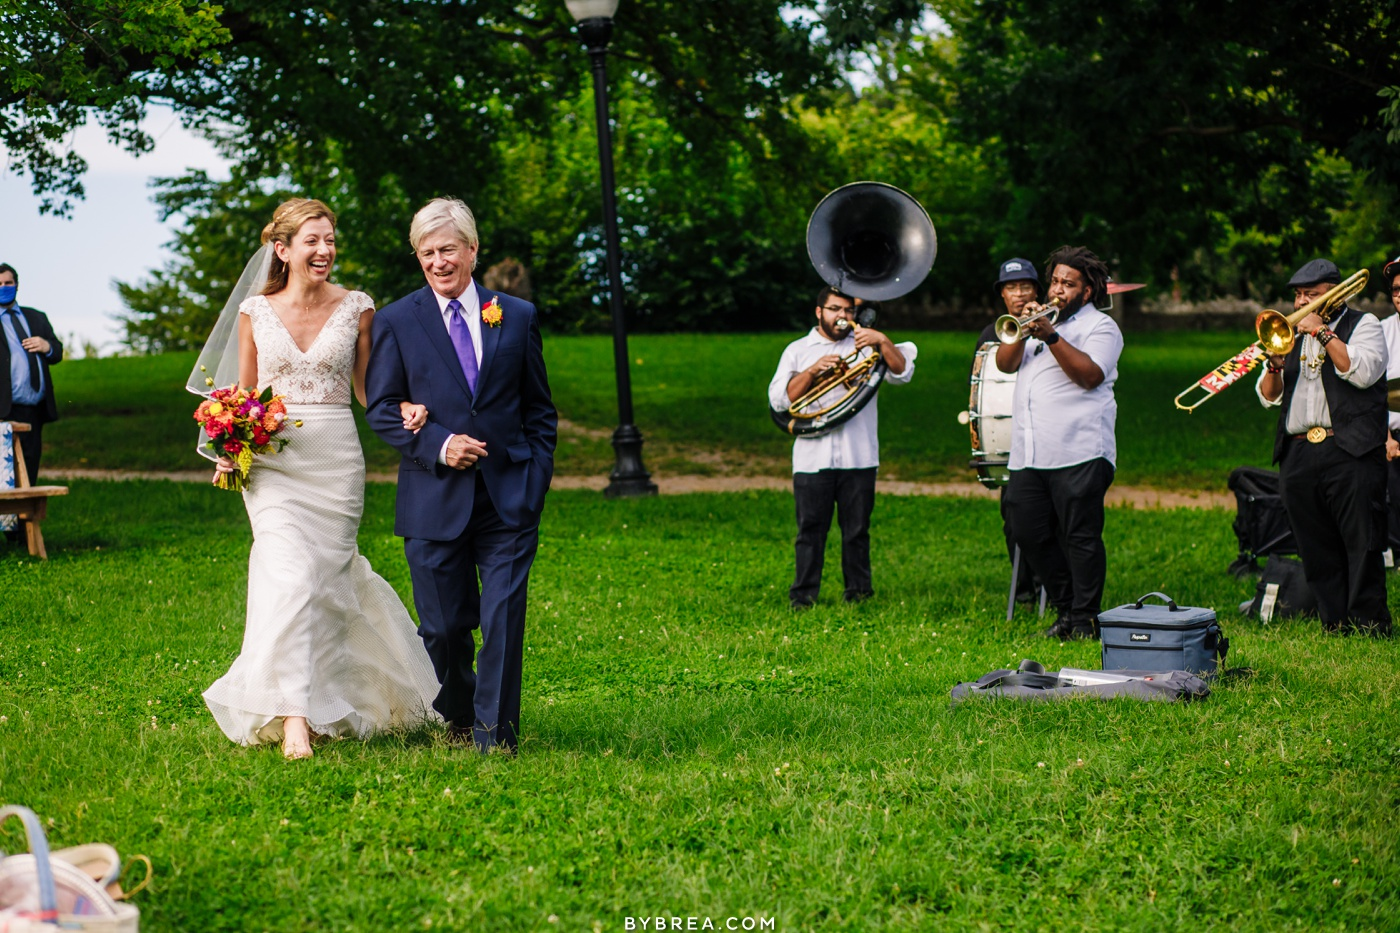 patterson park picnic wedding photos